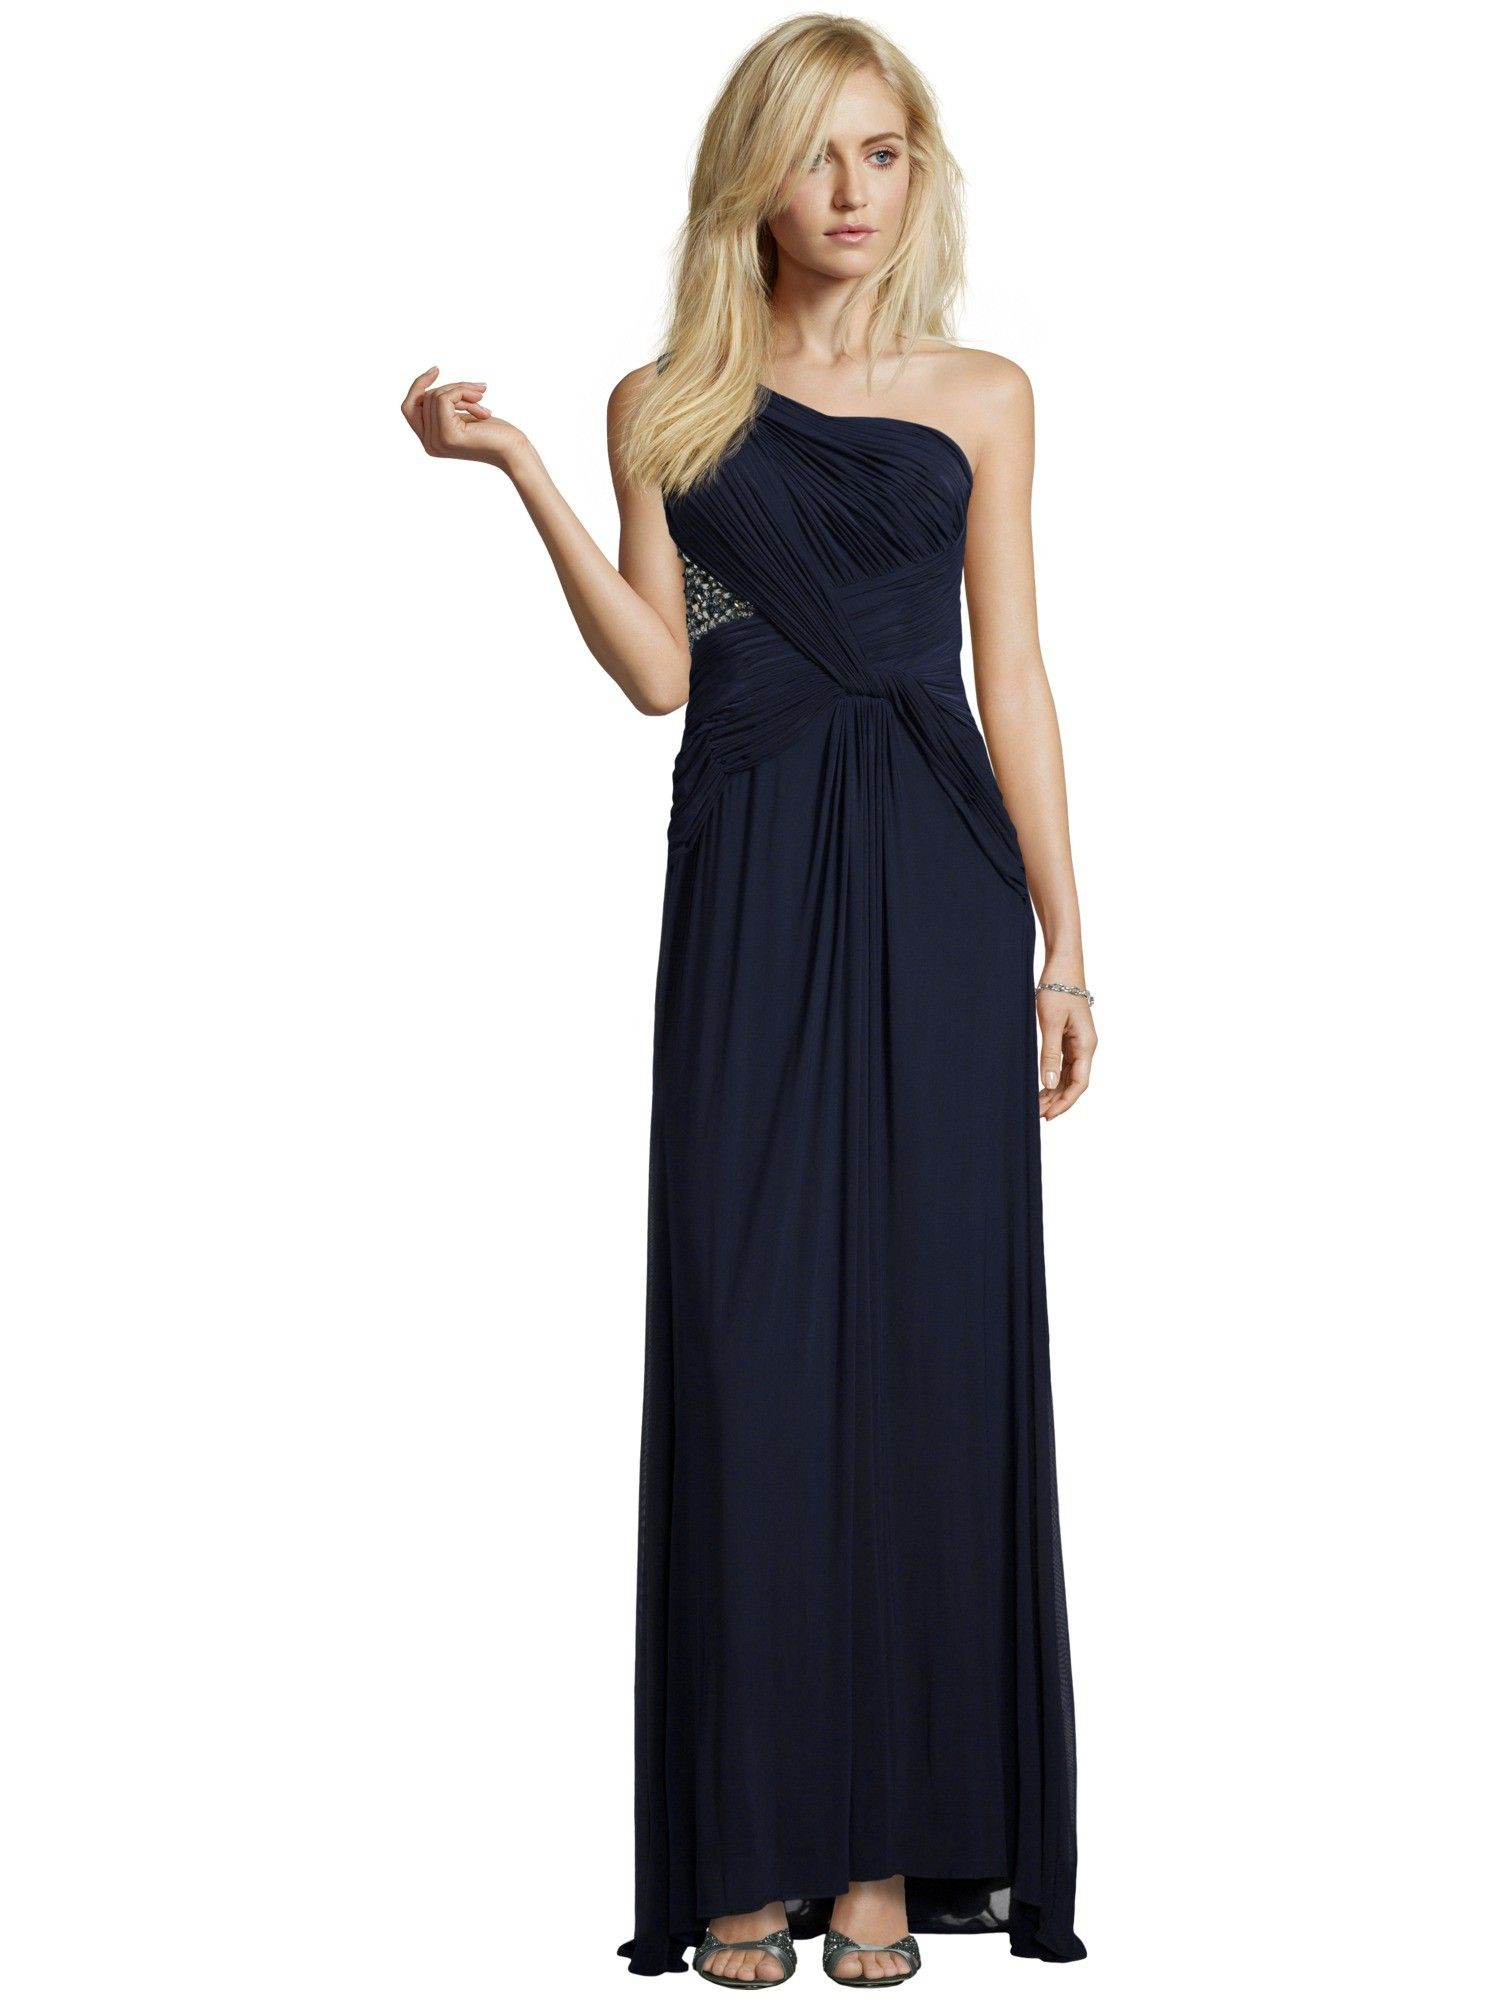 luxuar abendkleid mit one-shoulder-träger in blau / türkis